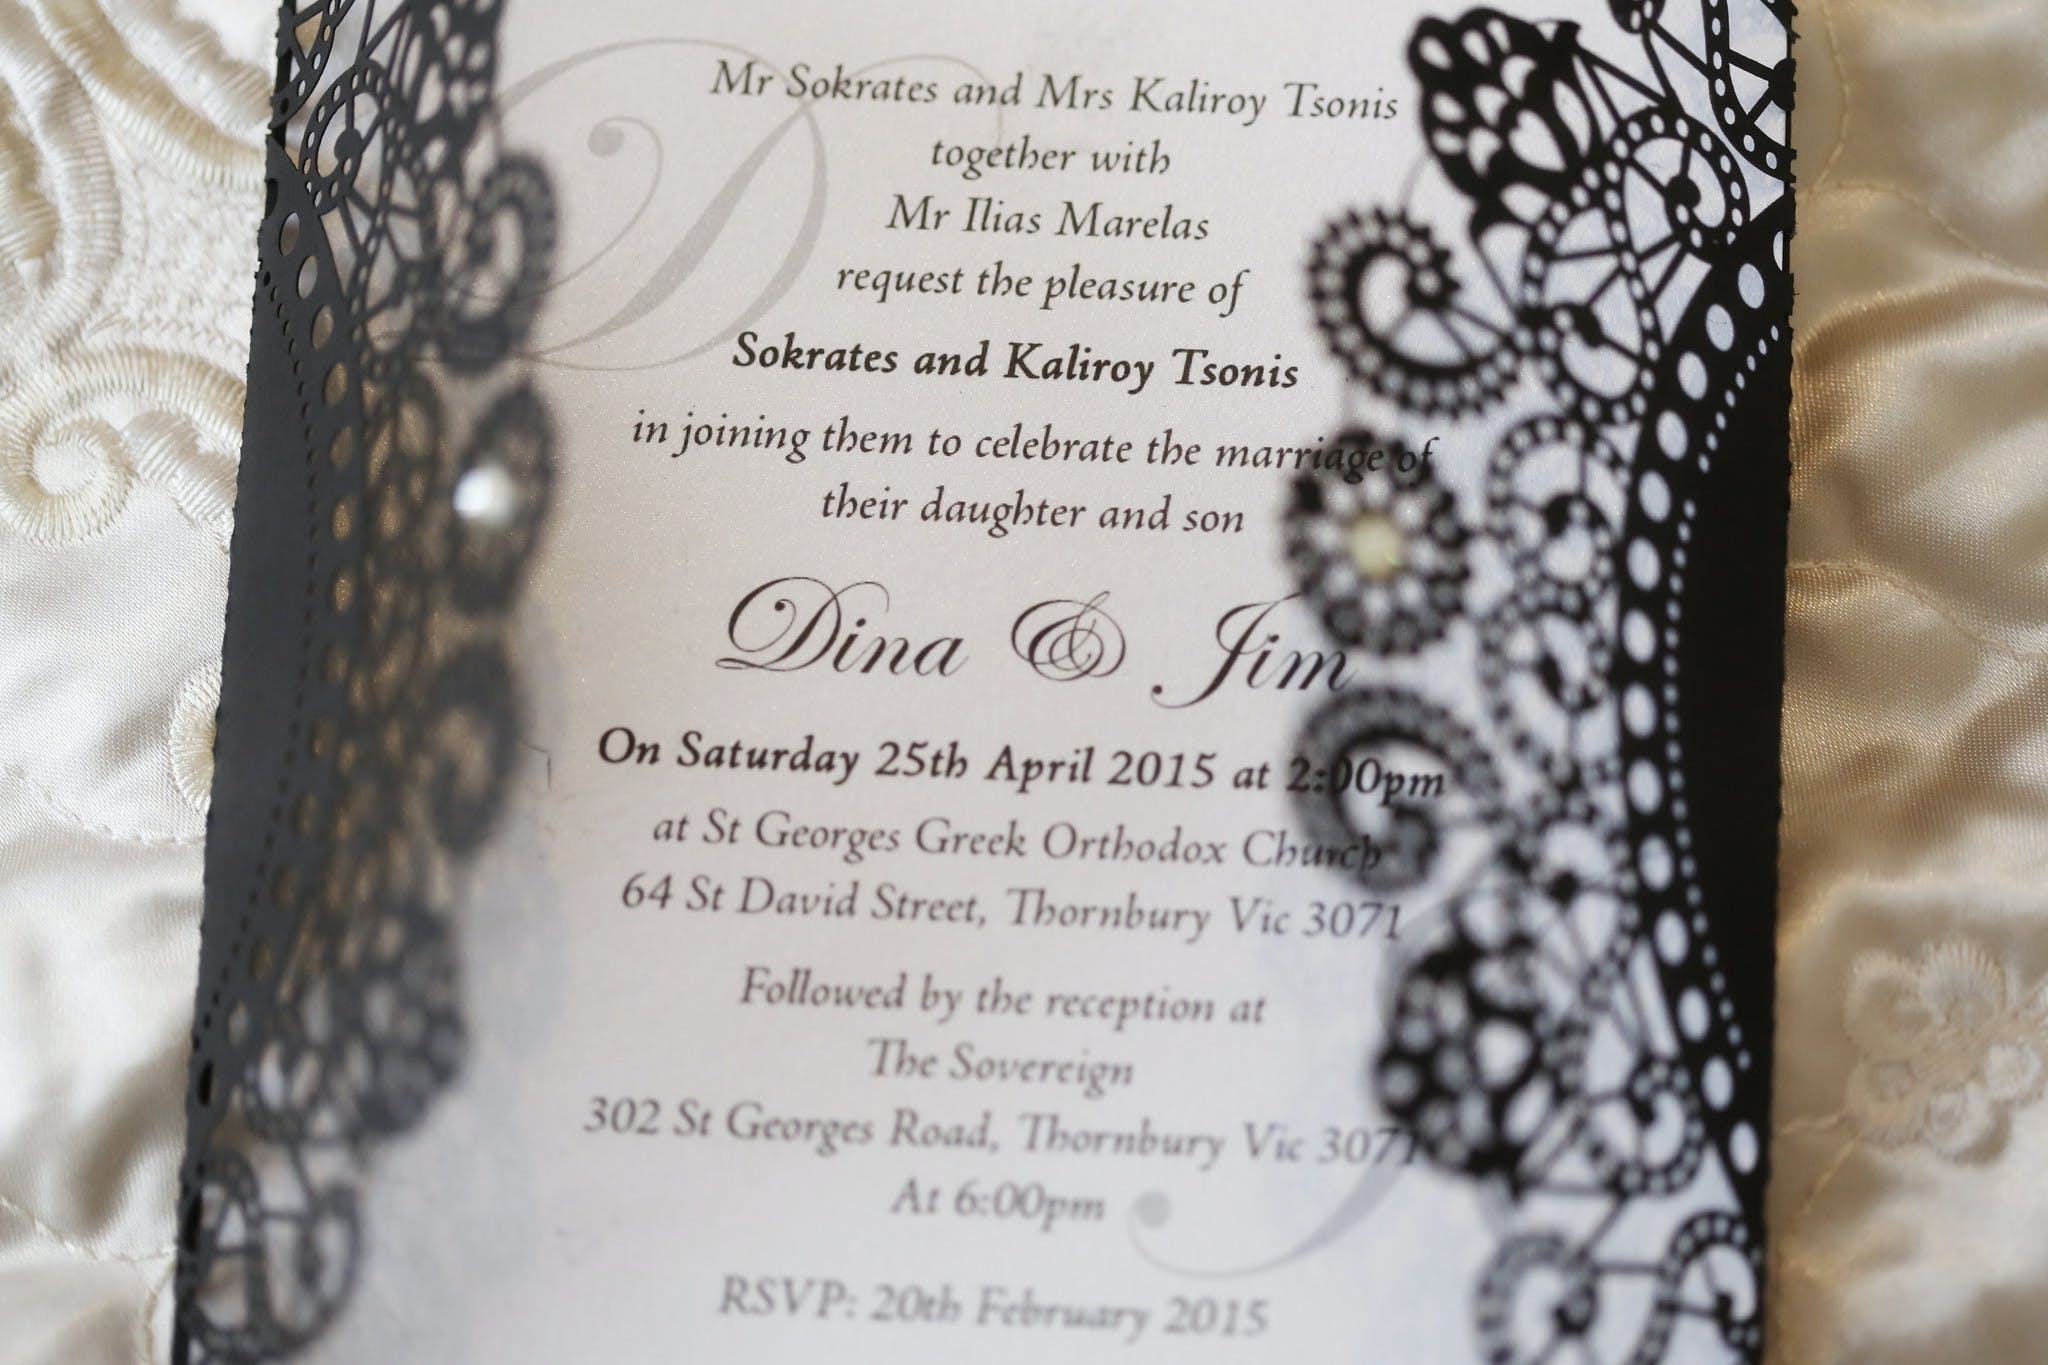 Dina & Jim's wedding | Red Butterfly Photography